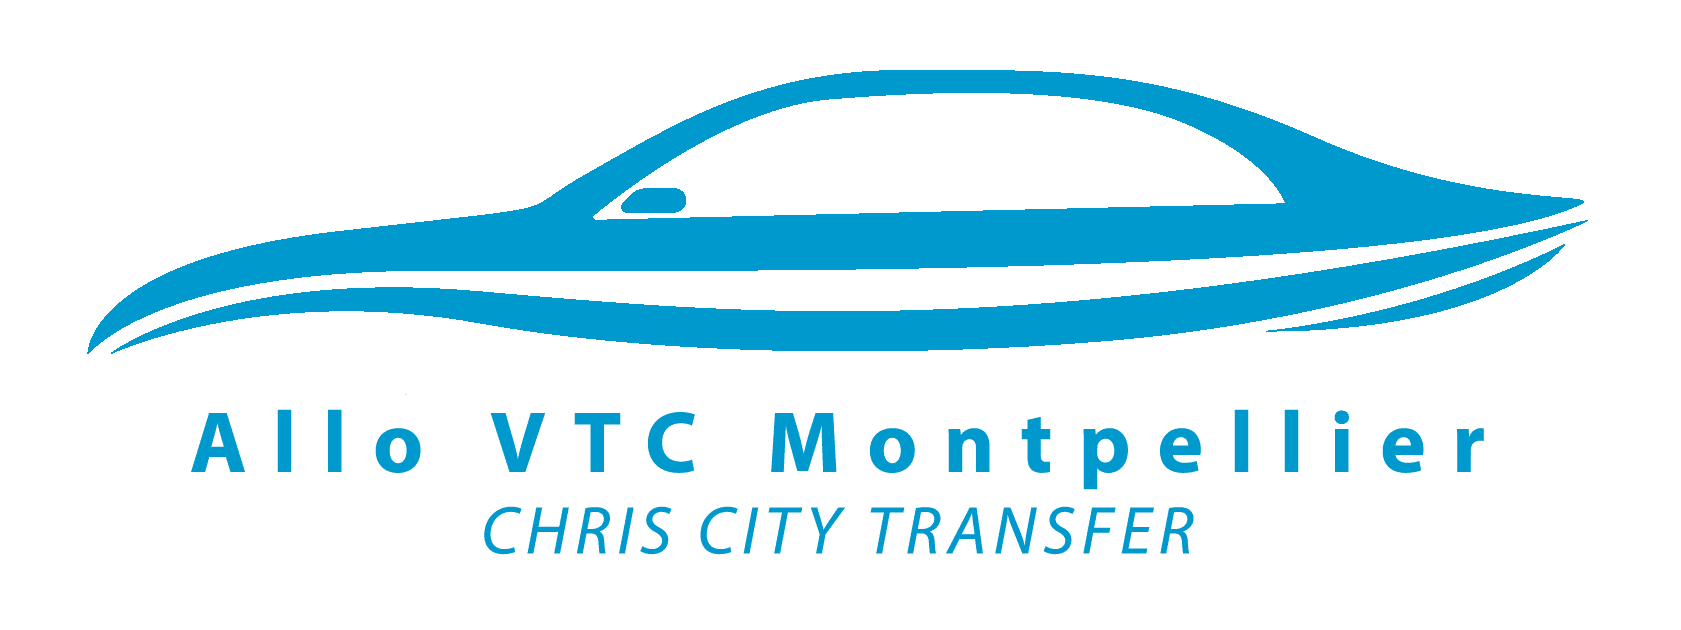 VTC Montpellier - Chris City Transfer